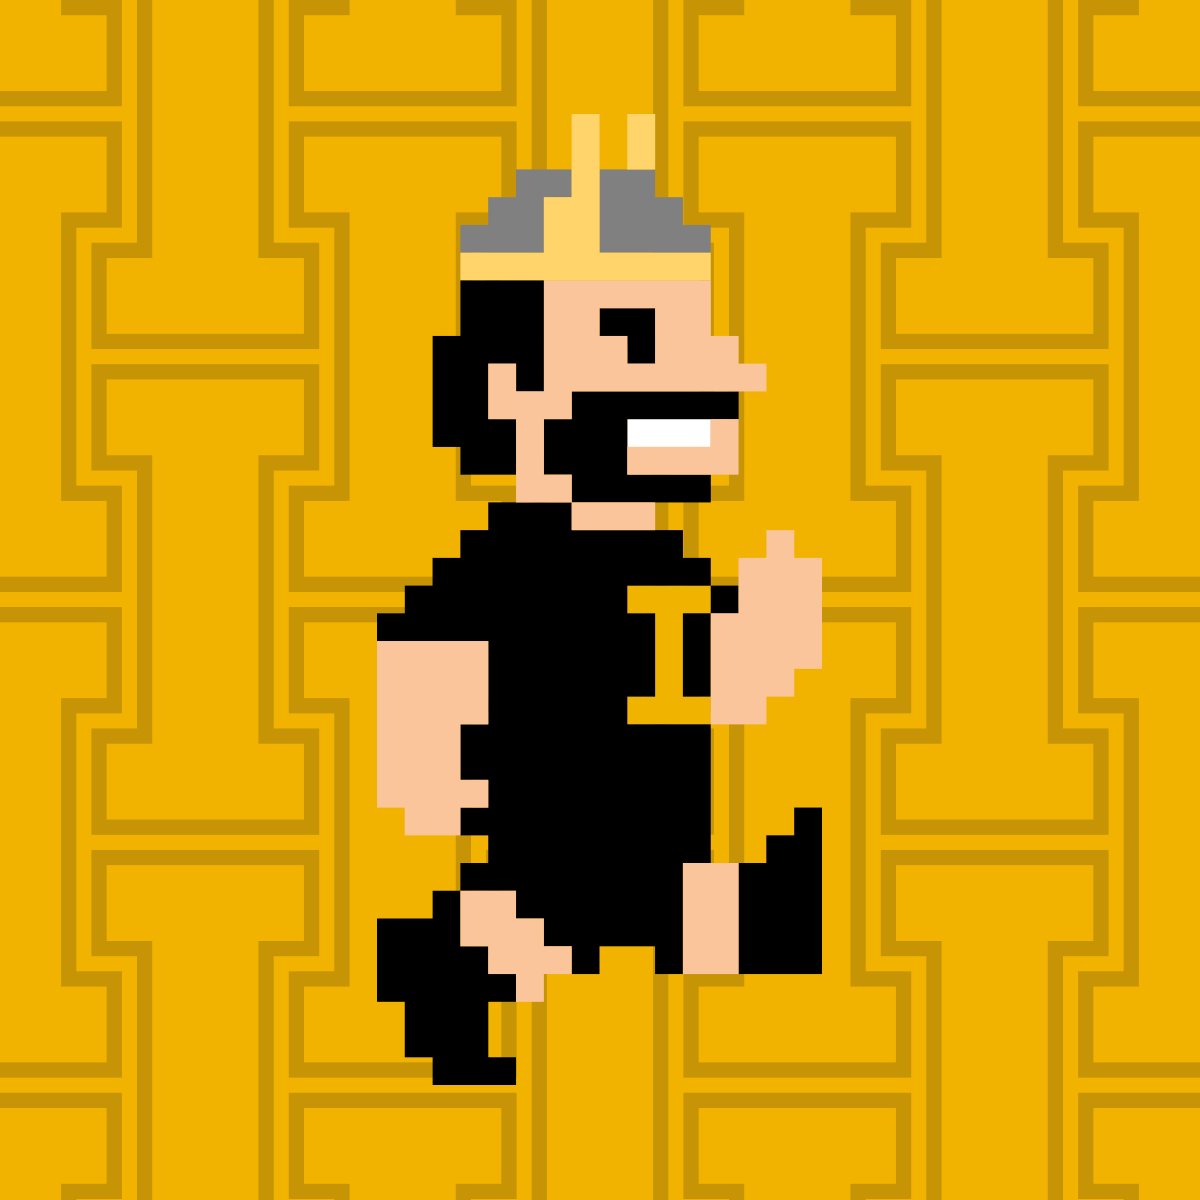 Vandal Giving Day Profile Picture 8-bit Joe Gold Run